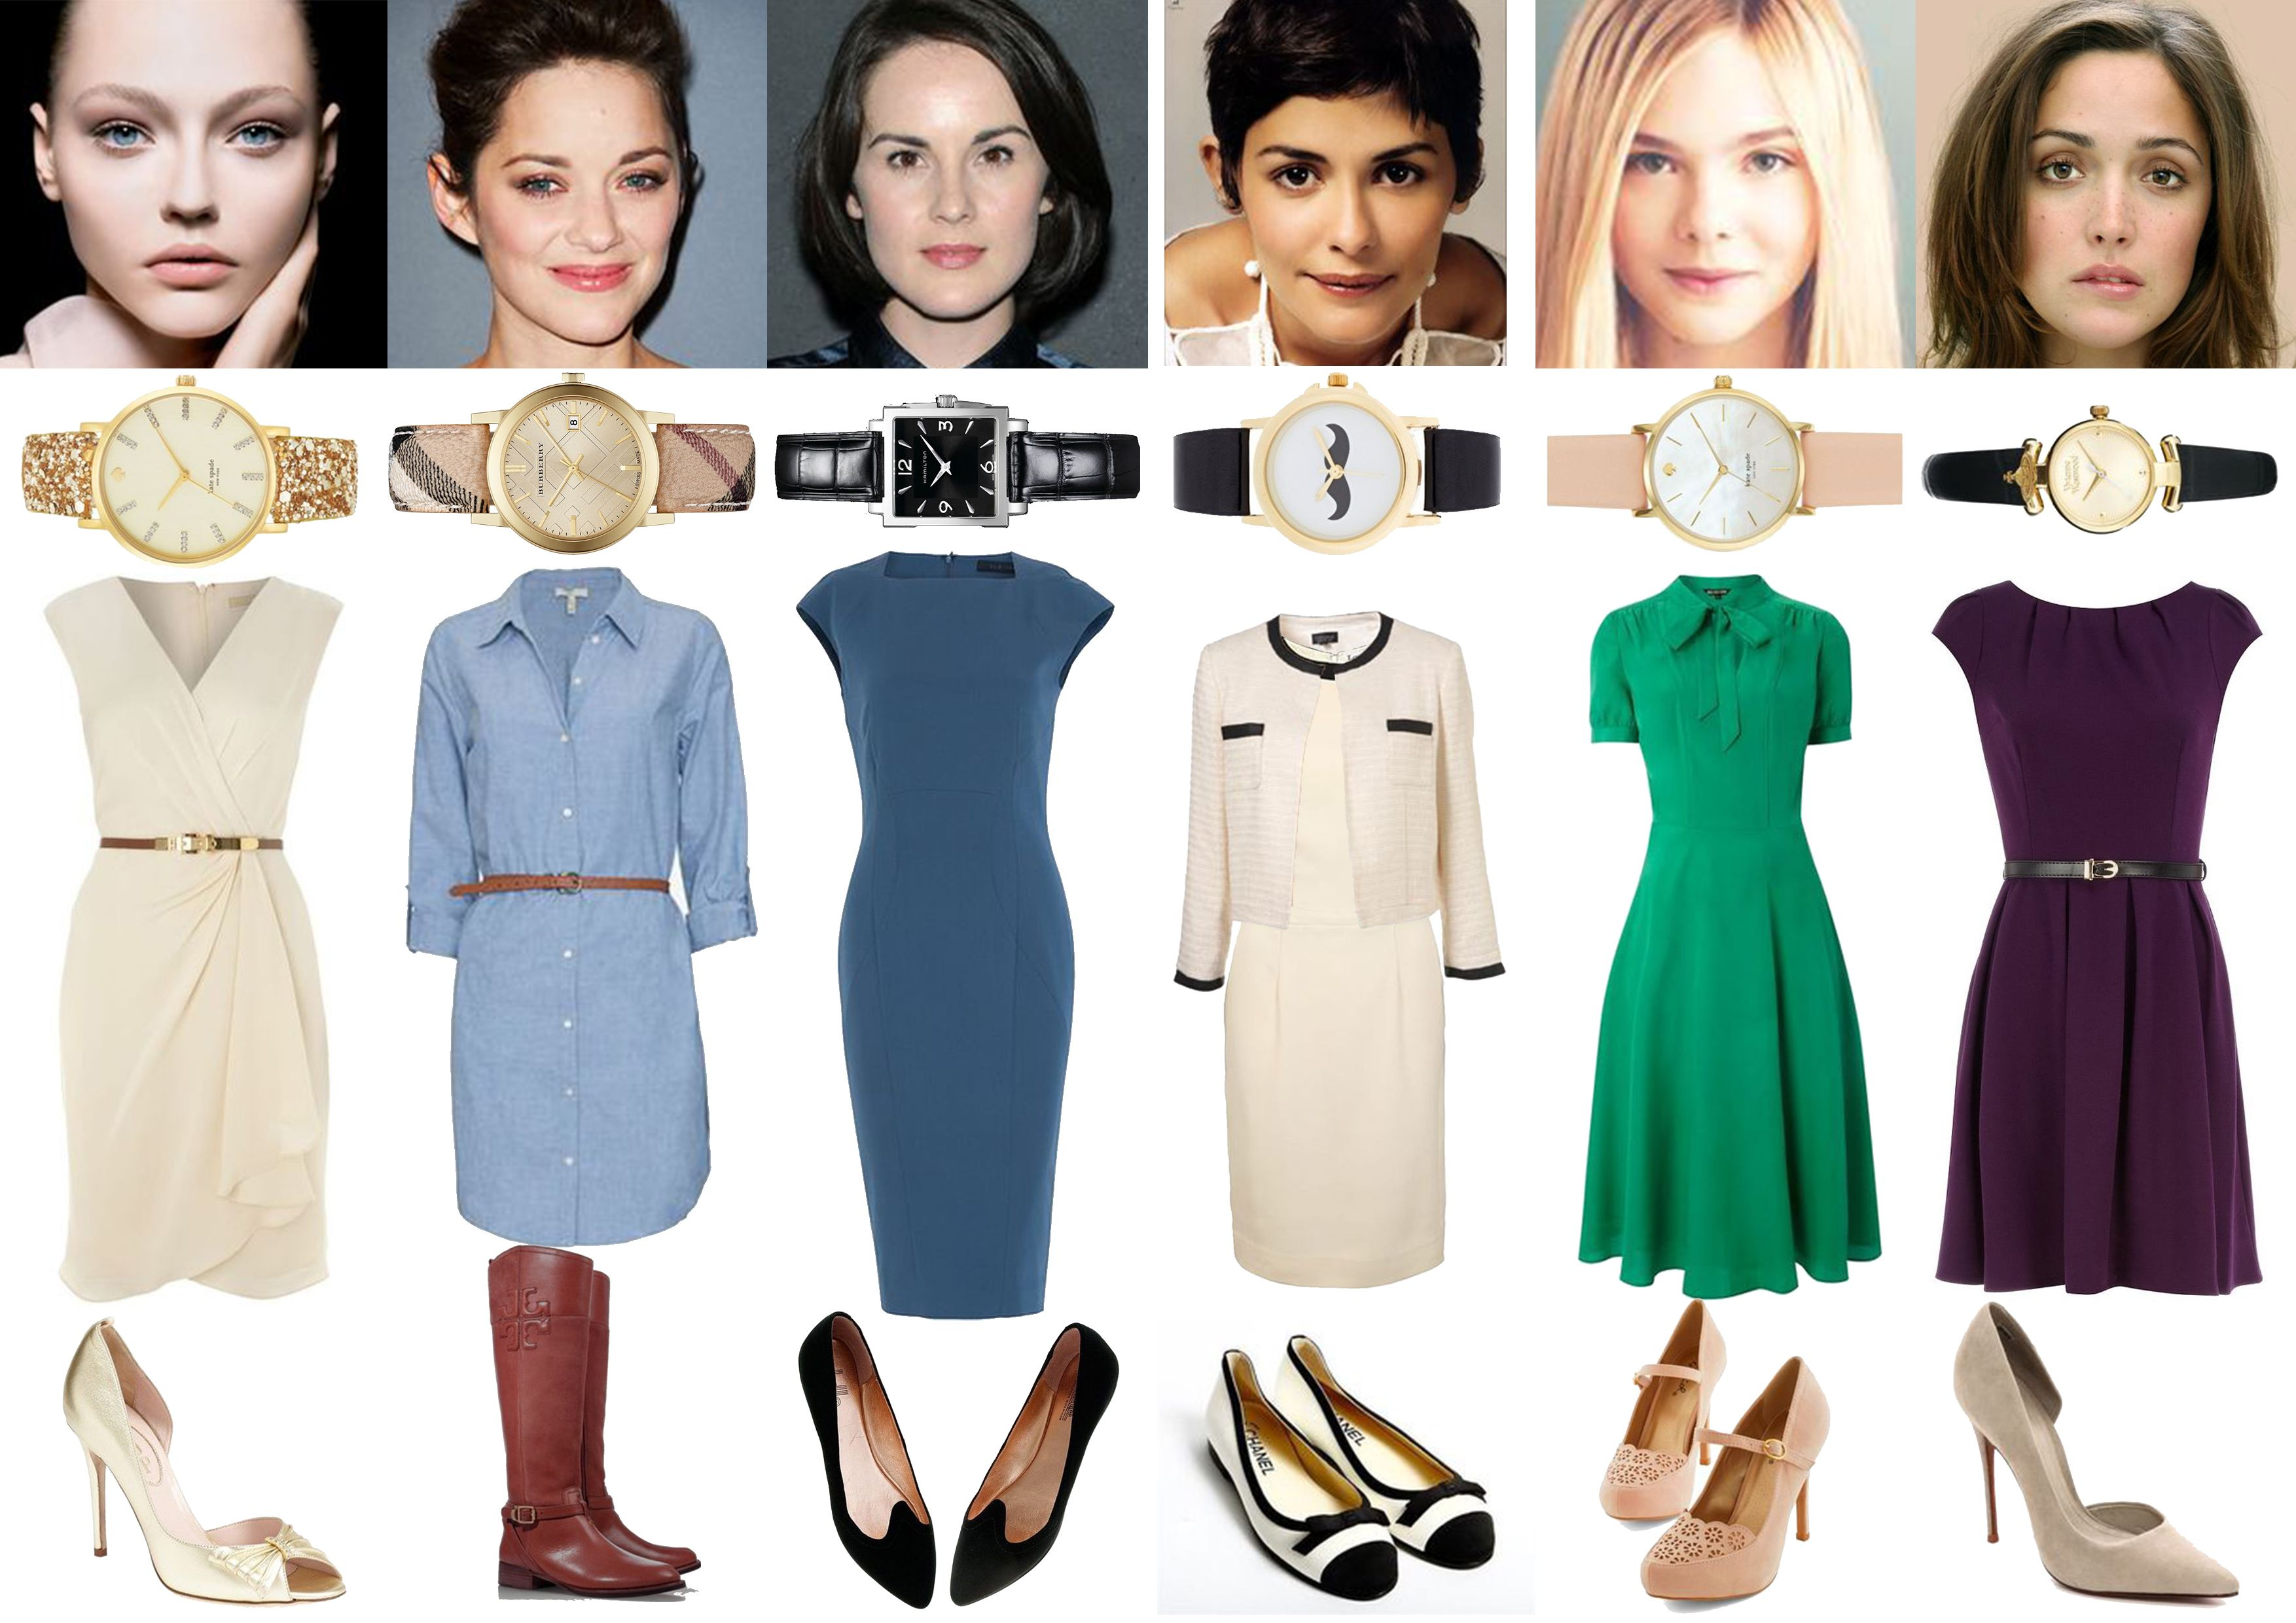 Image Style Identity Cheat Sheet 006 Classic Dress Styles My Best Guess For Classic